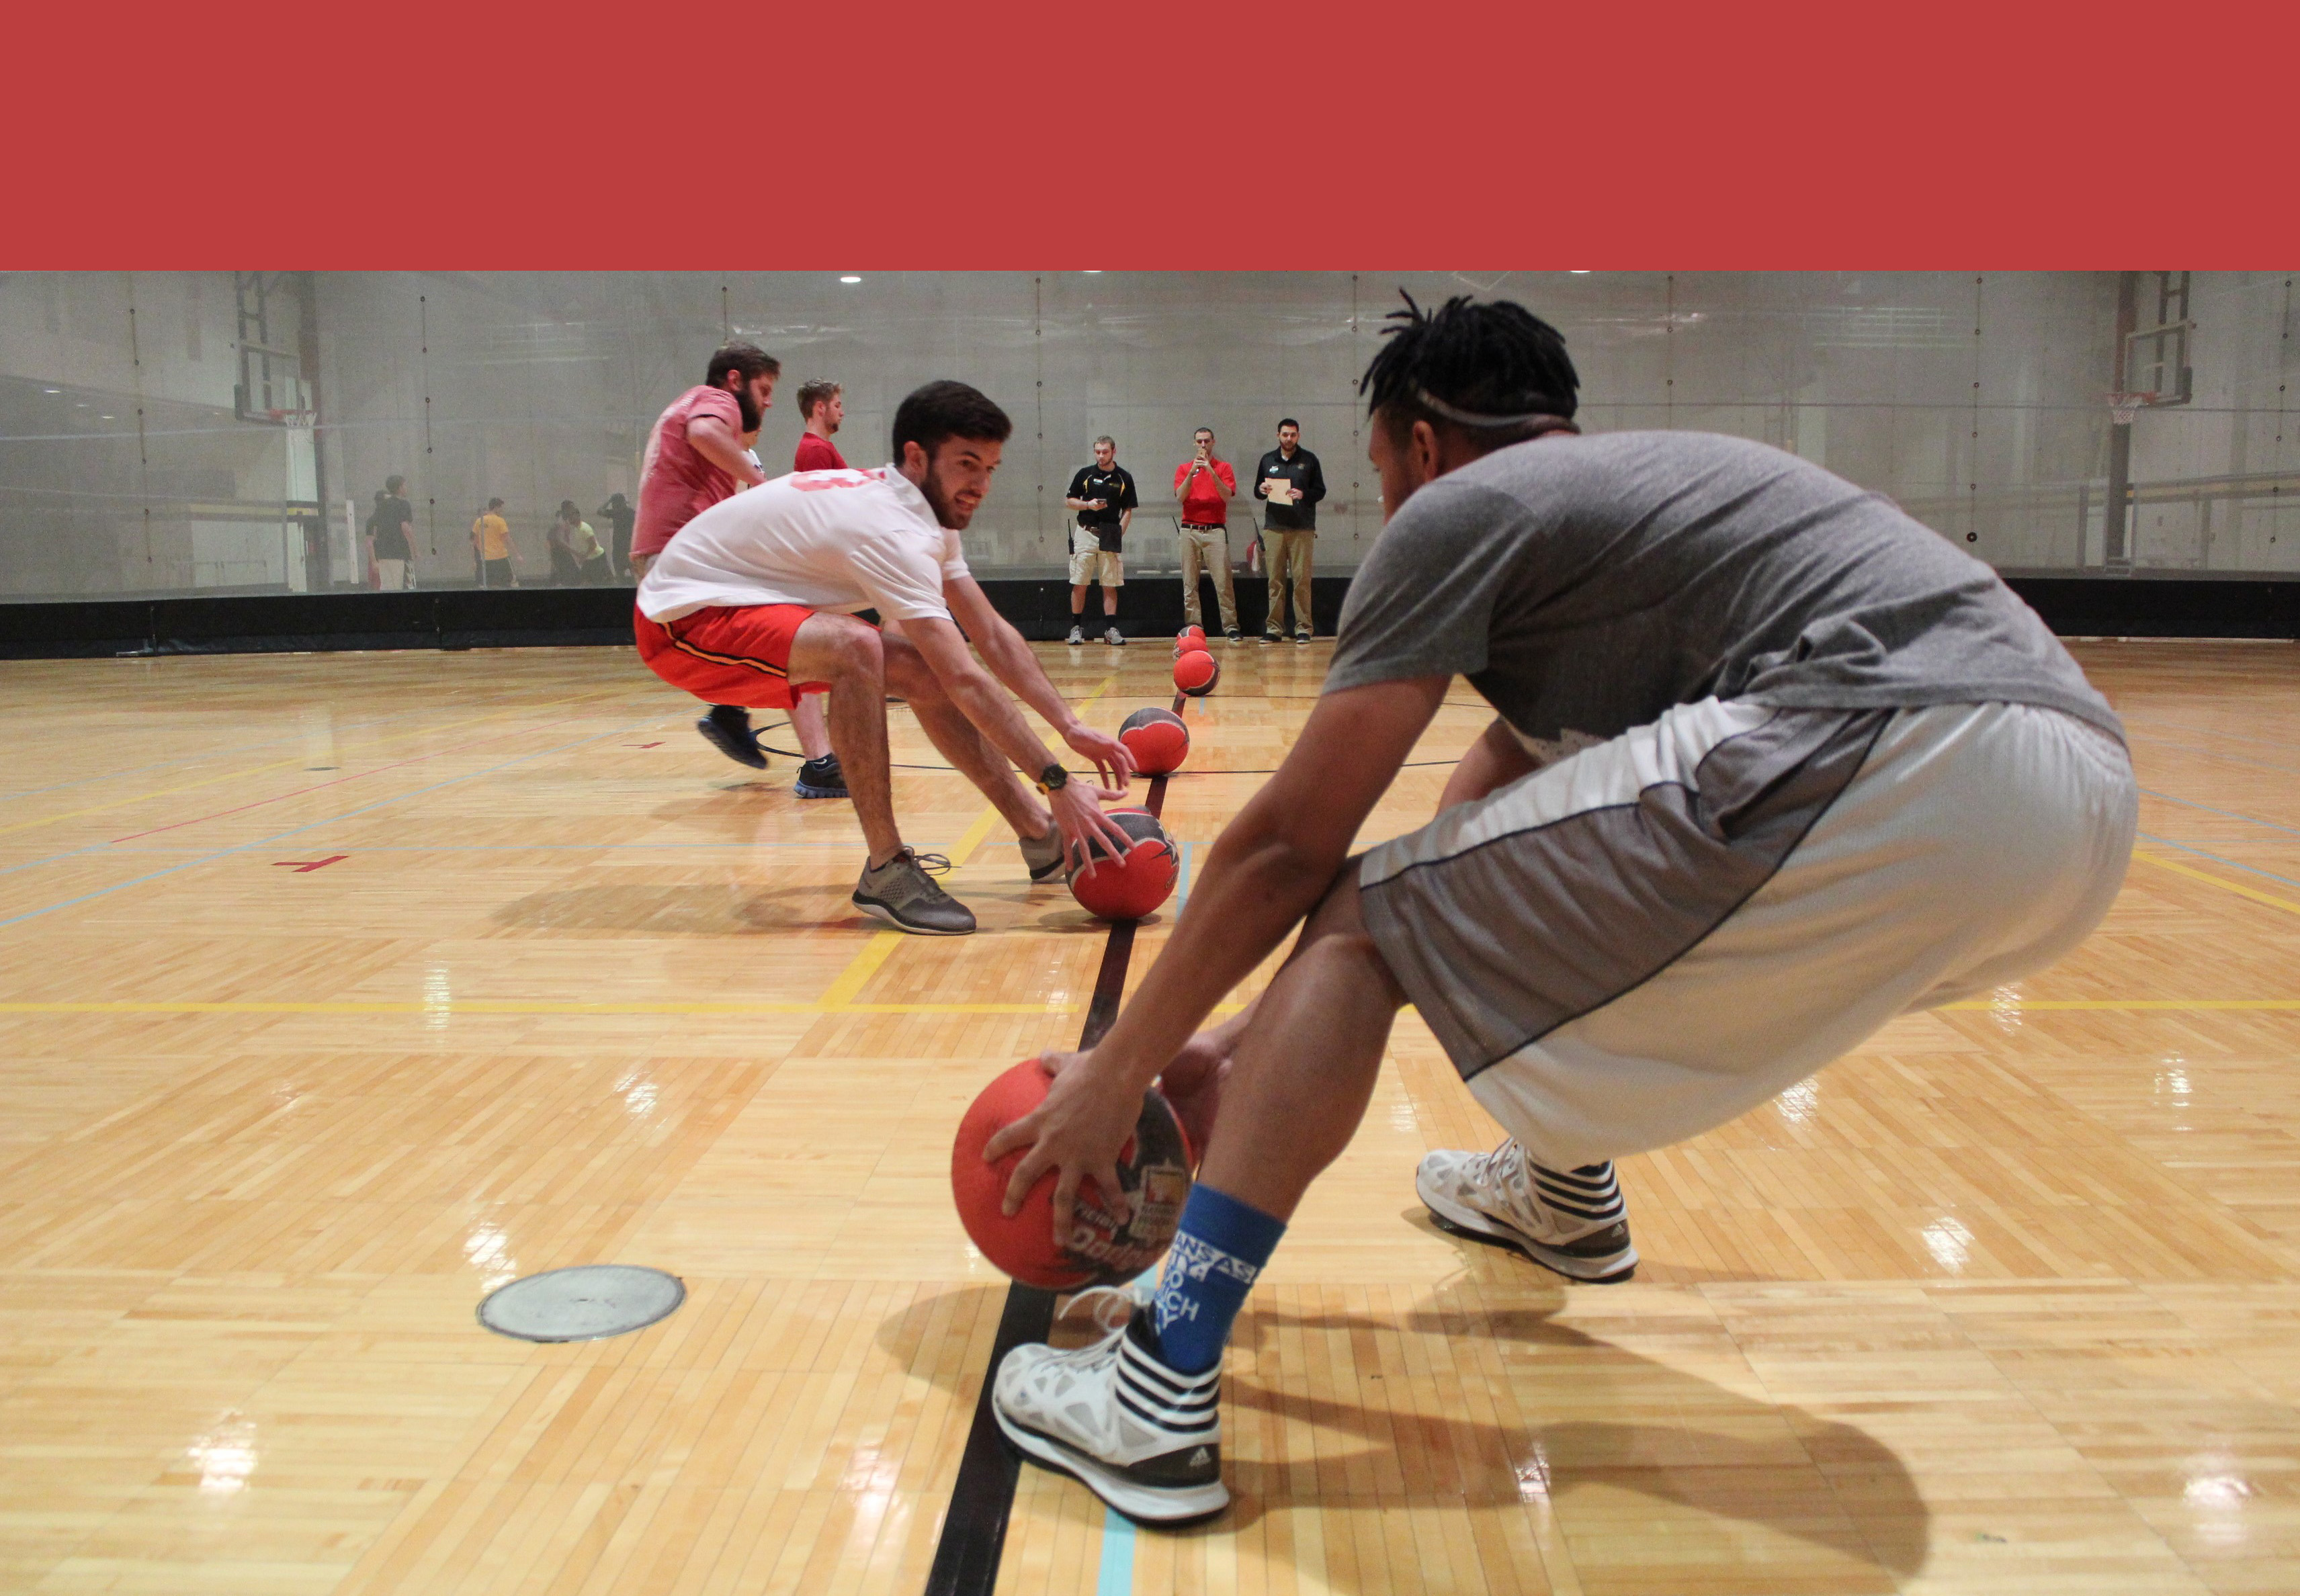 Beginning of a dodgeball match; two boys grab balls on the centerline, poised to spring away back onto their side, away from the opponent.